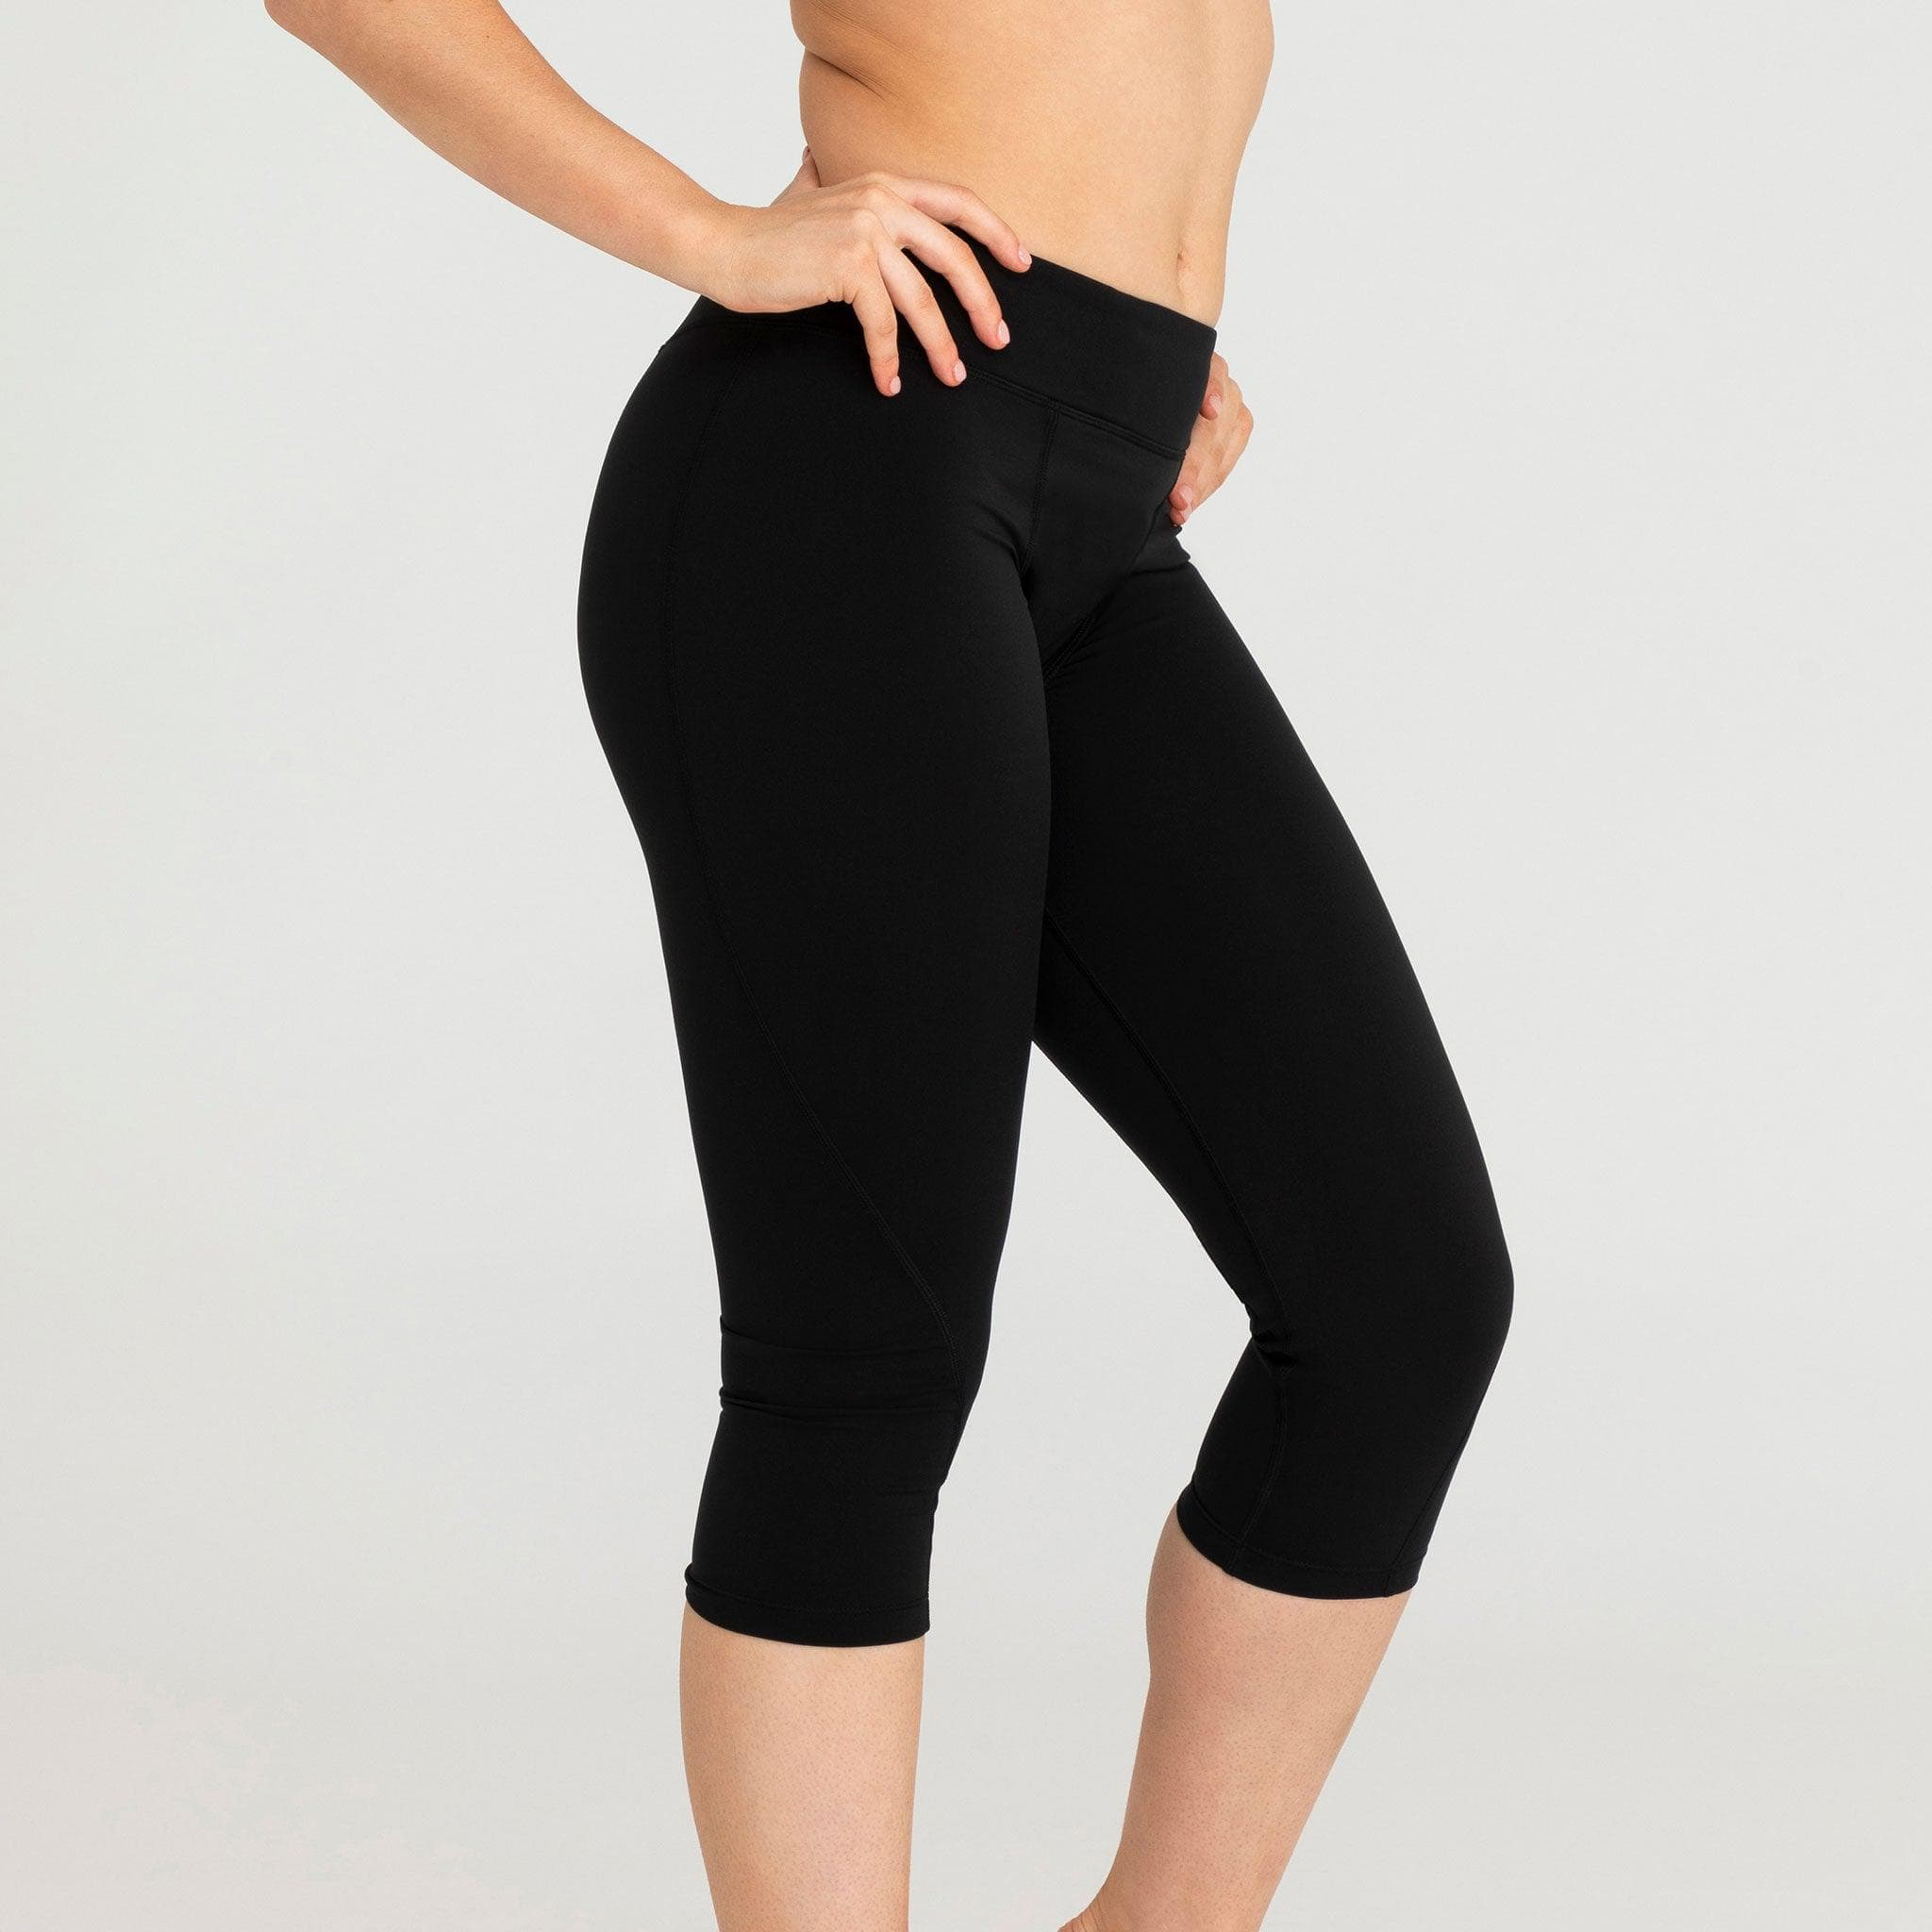 Active 3/4 Leggings Light-Moderate Absorbency - Modibodi